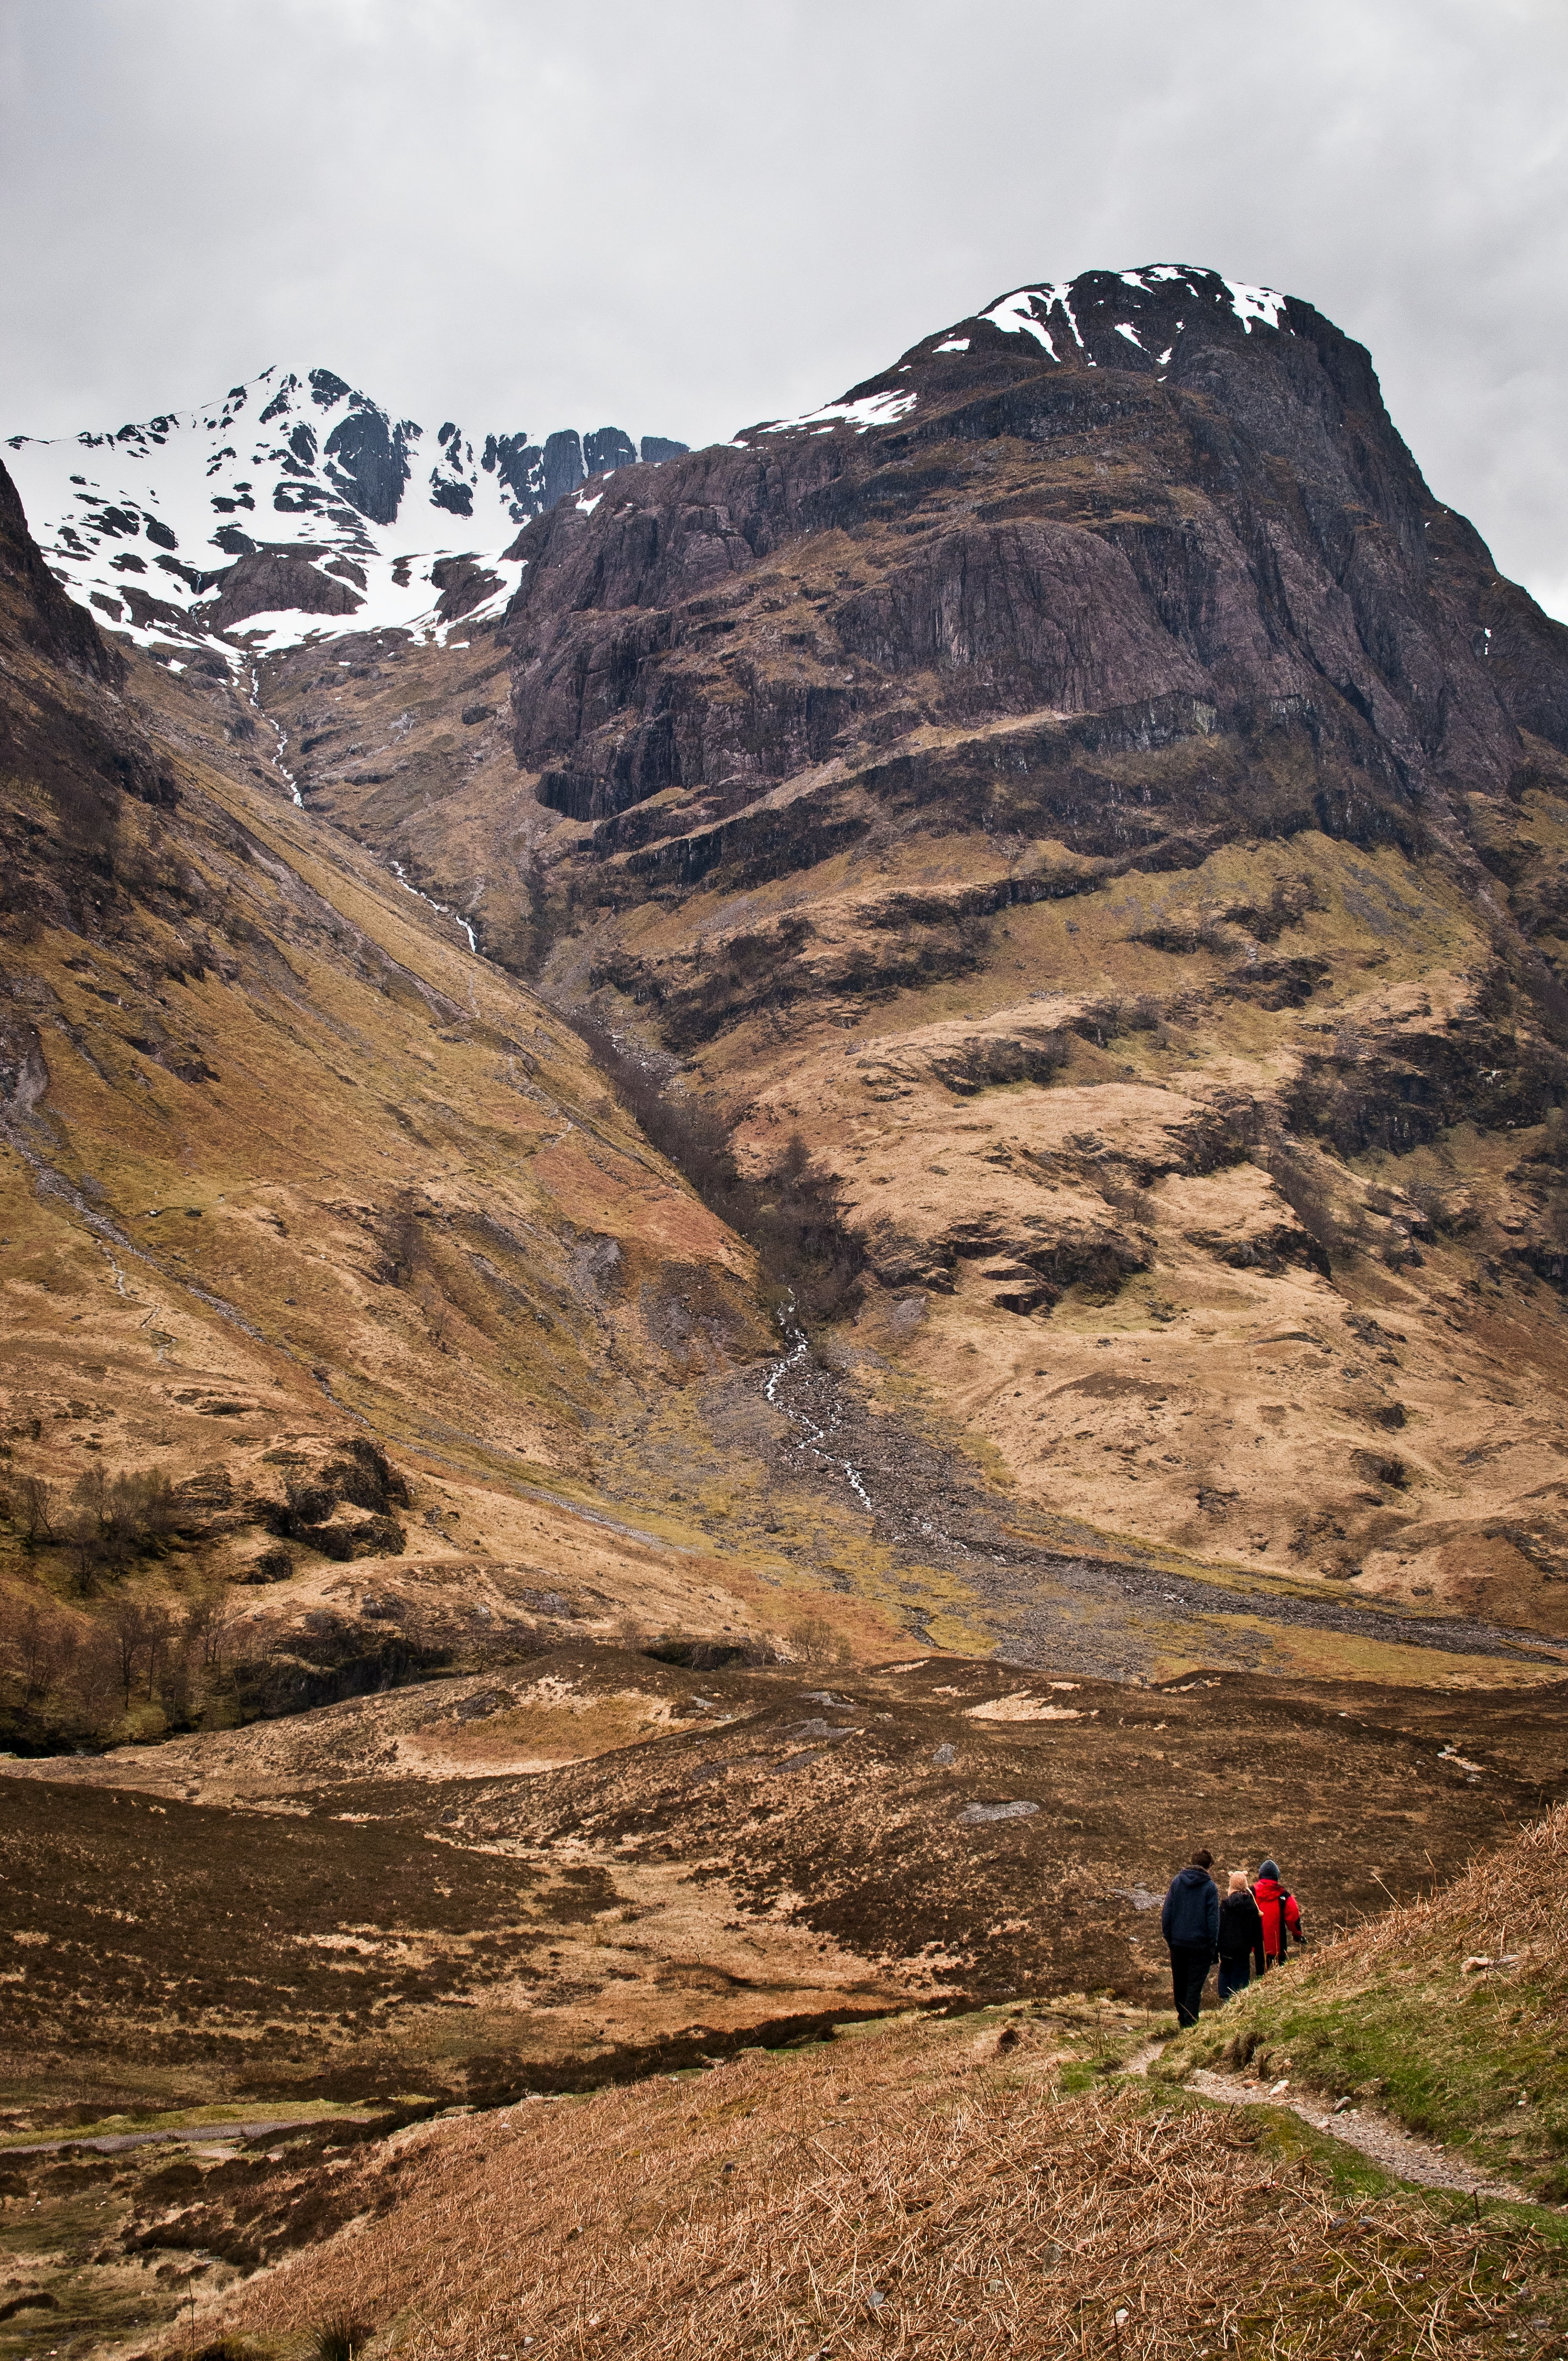 Hikers on a dirt path at the foot of a mountain in Glencoe